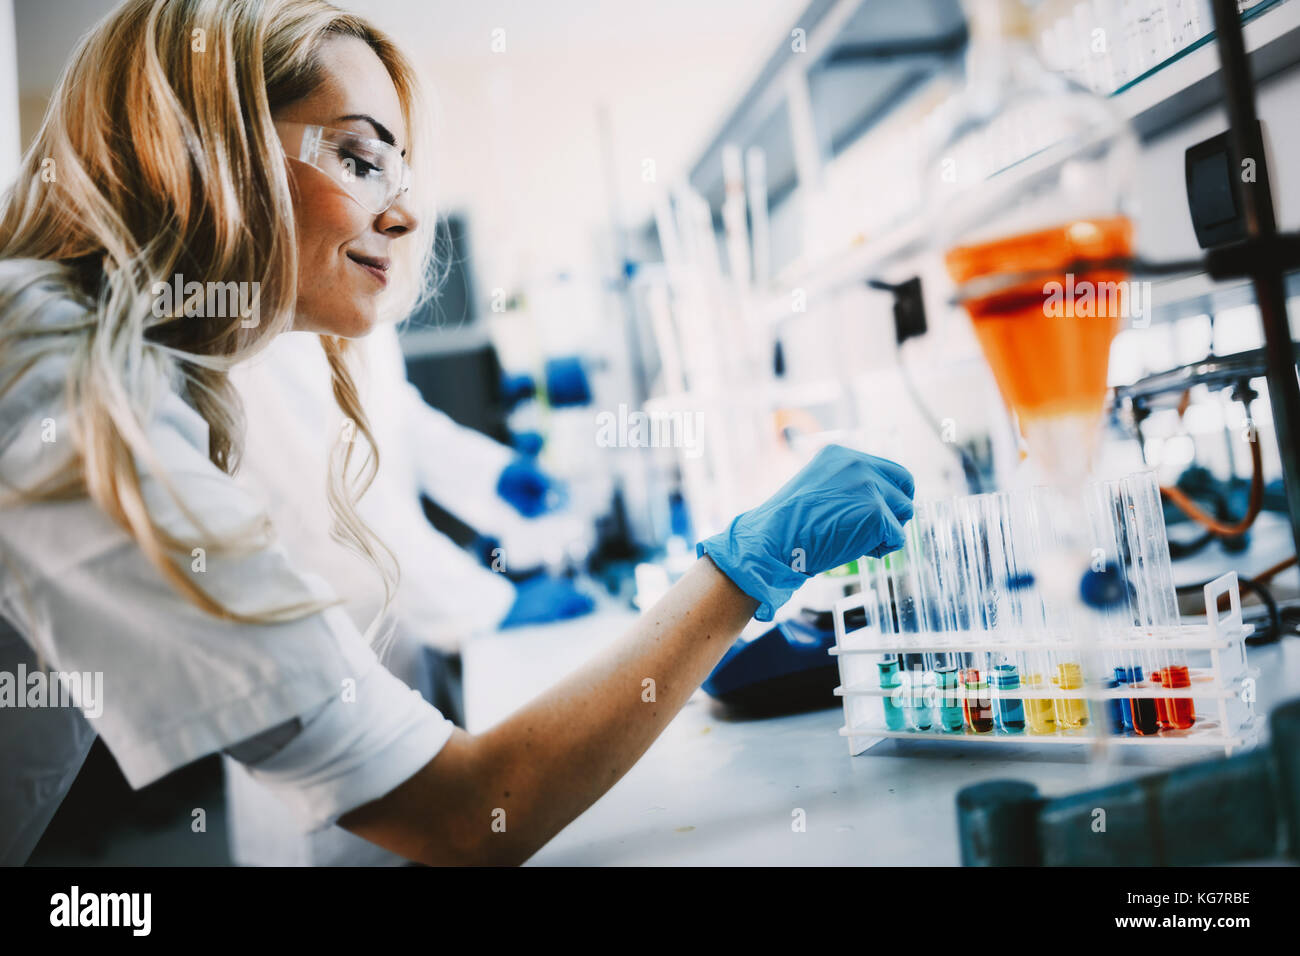 Female student of chemistry working in laboratory - Stock Image